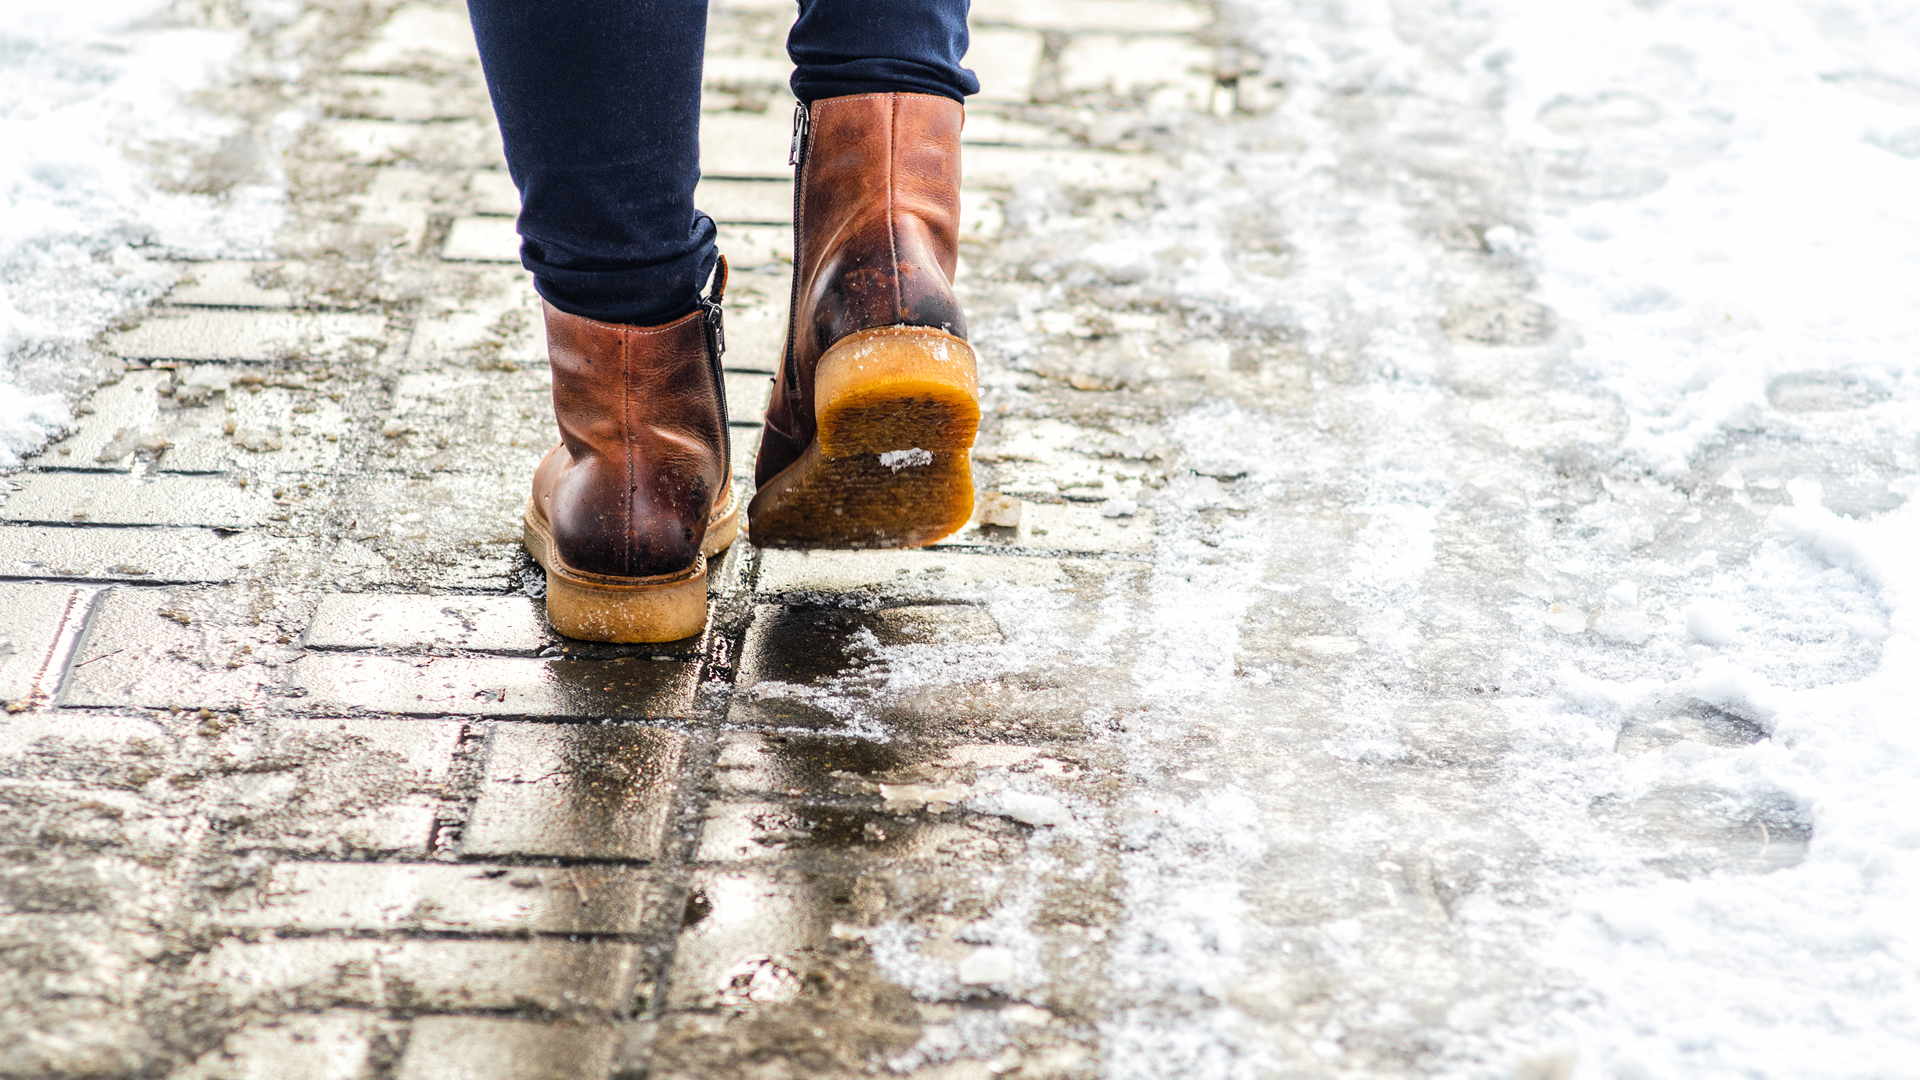 Walk On Wet Melted Ice Pavement. Back View On The Feet Of A Man _1548781800781